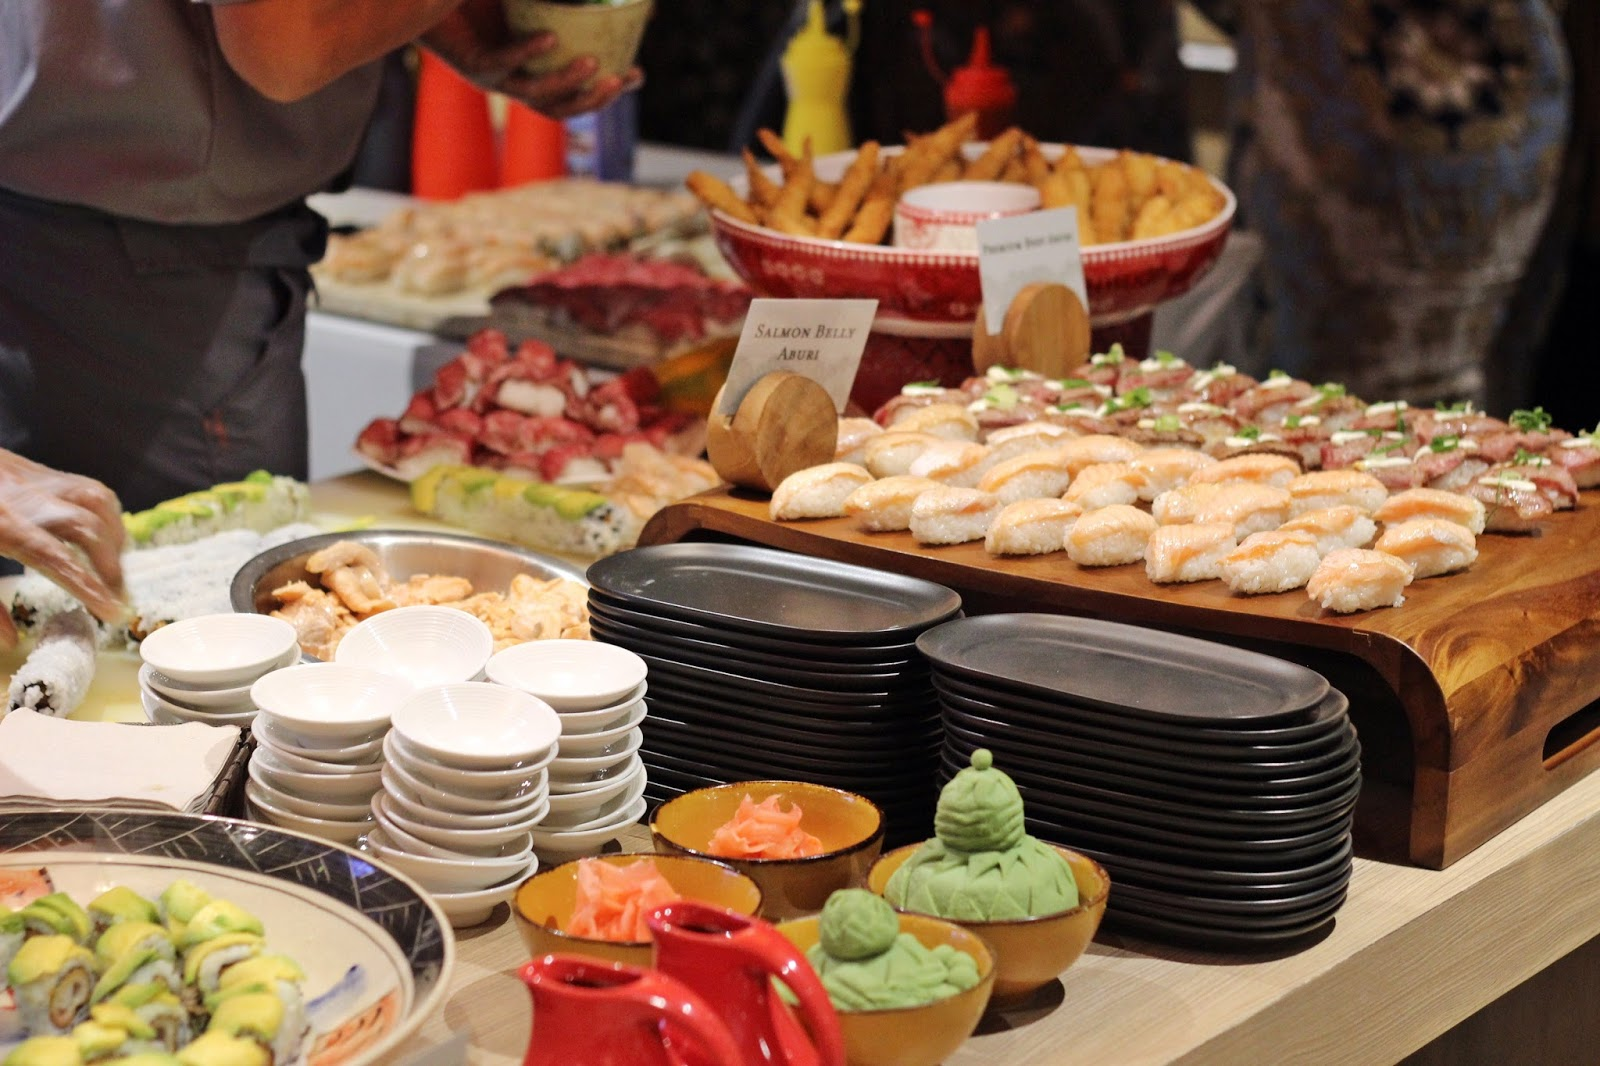 Western Food Catering Services